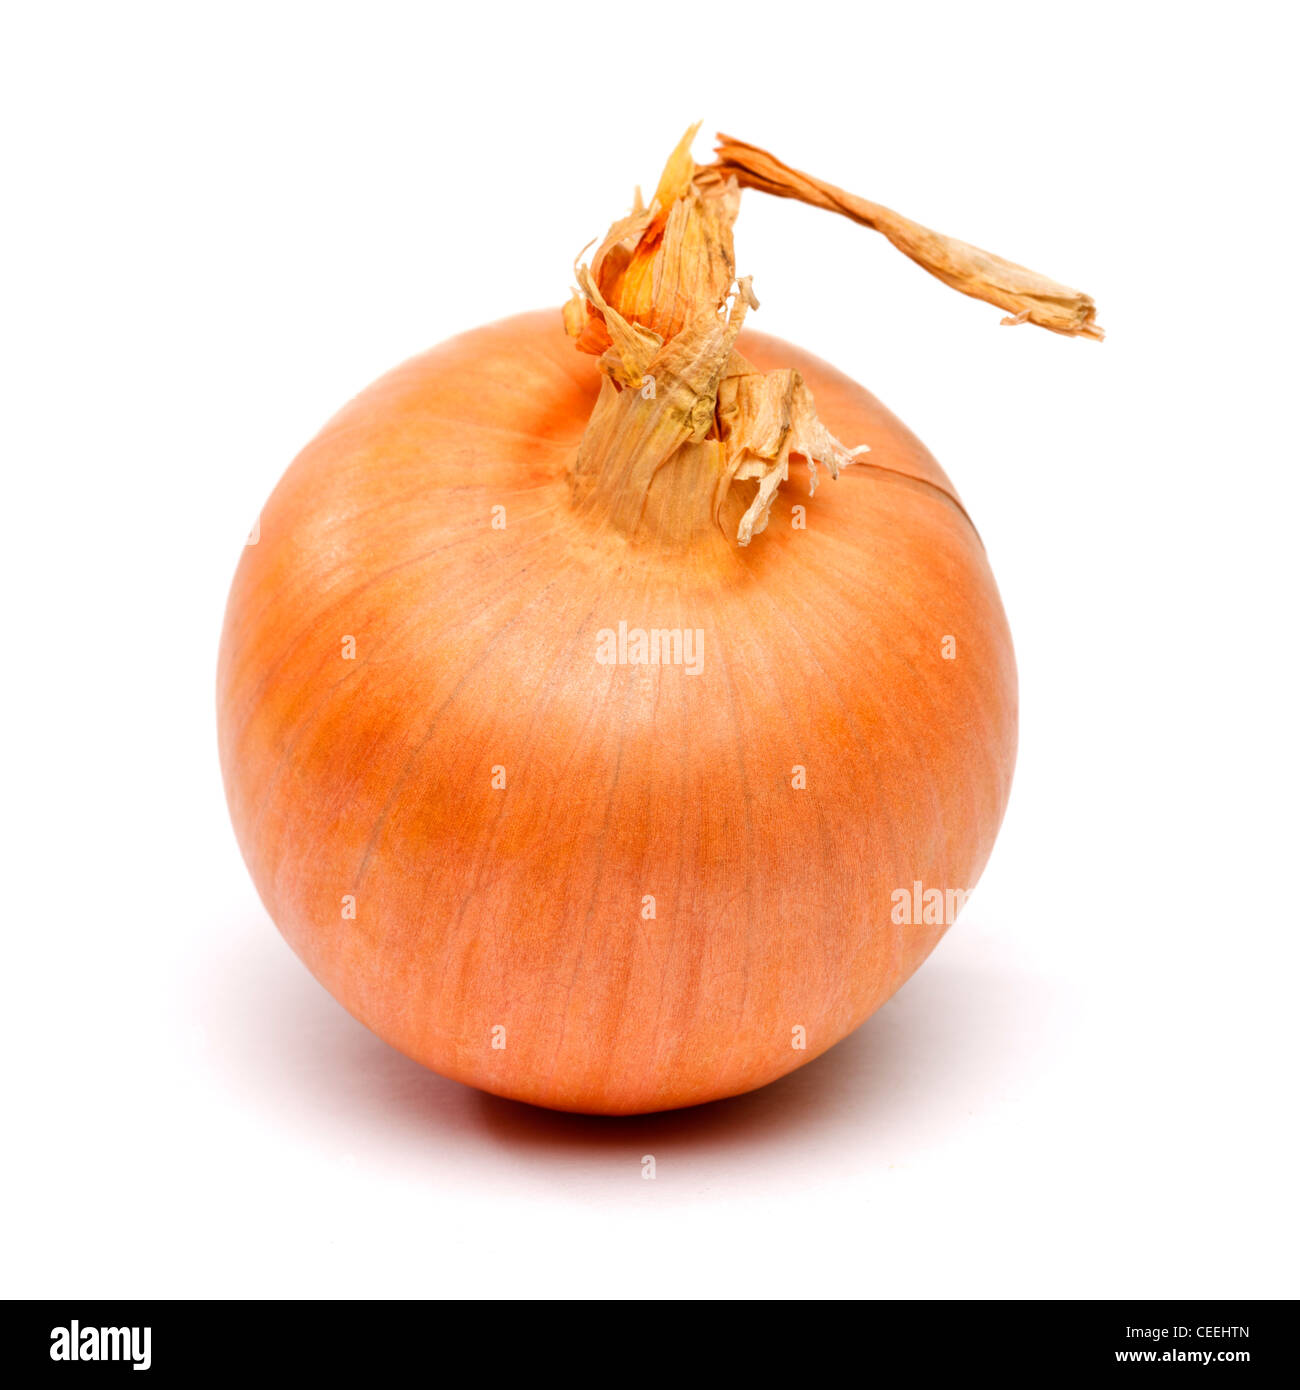 Onion on white background cut out - Stock Image